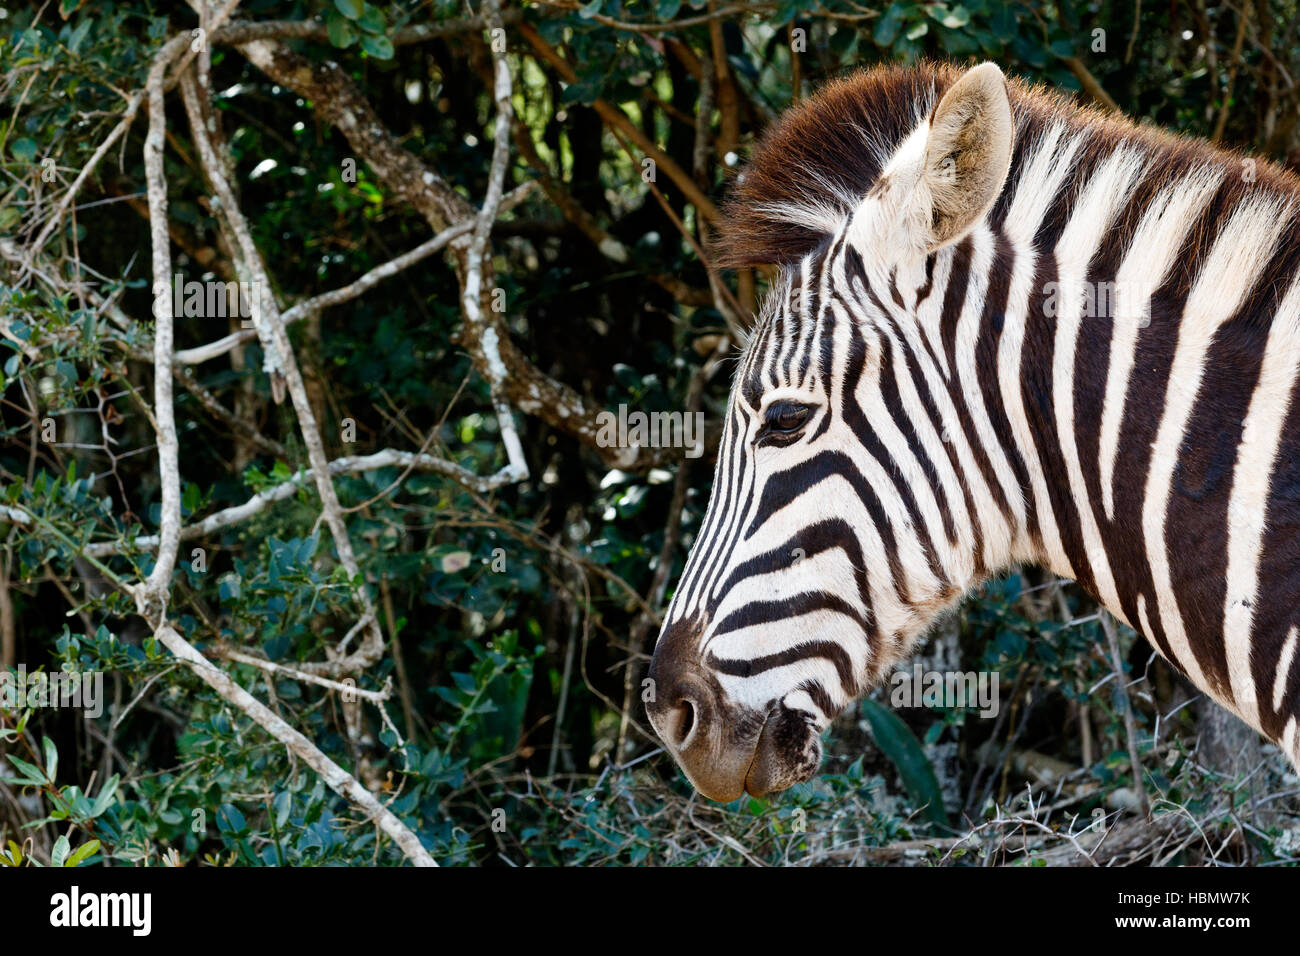 Just a pin sharp Burchell's Zebra - Stock Image